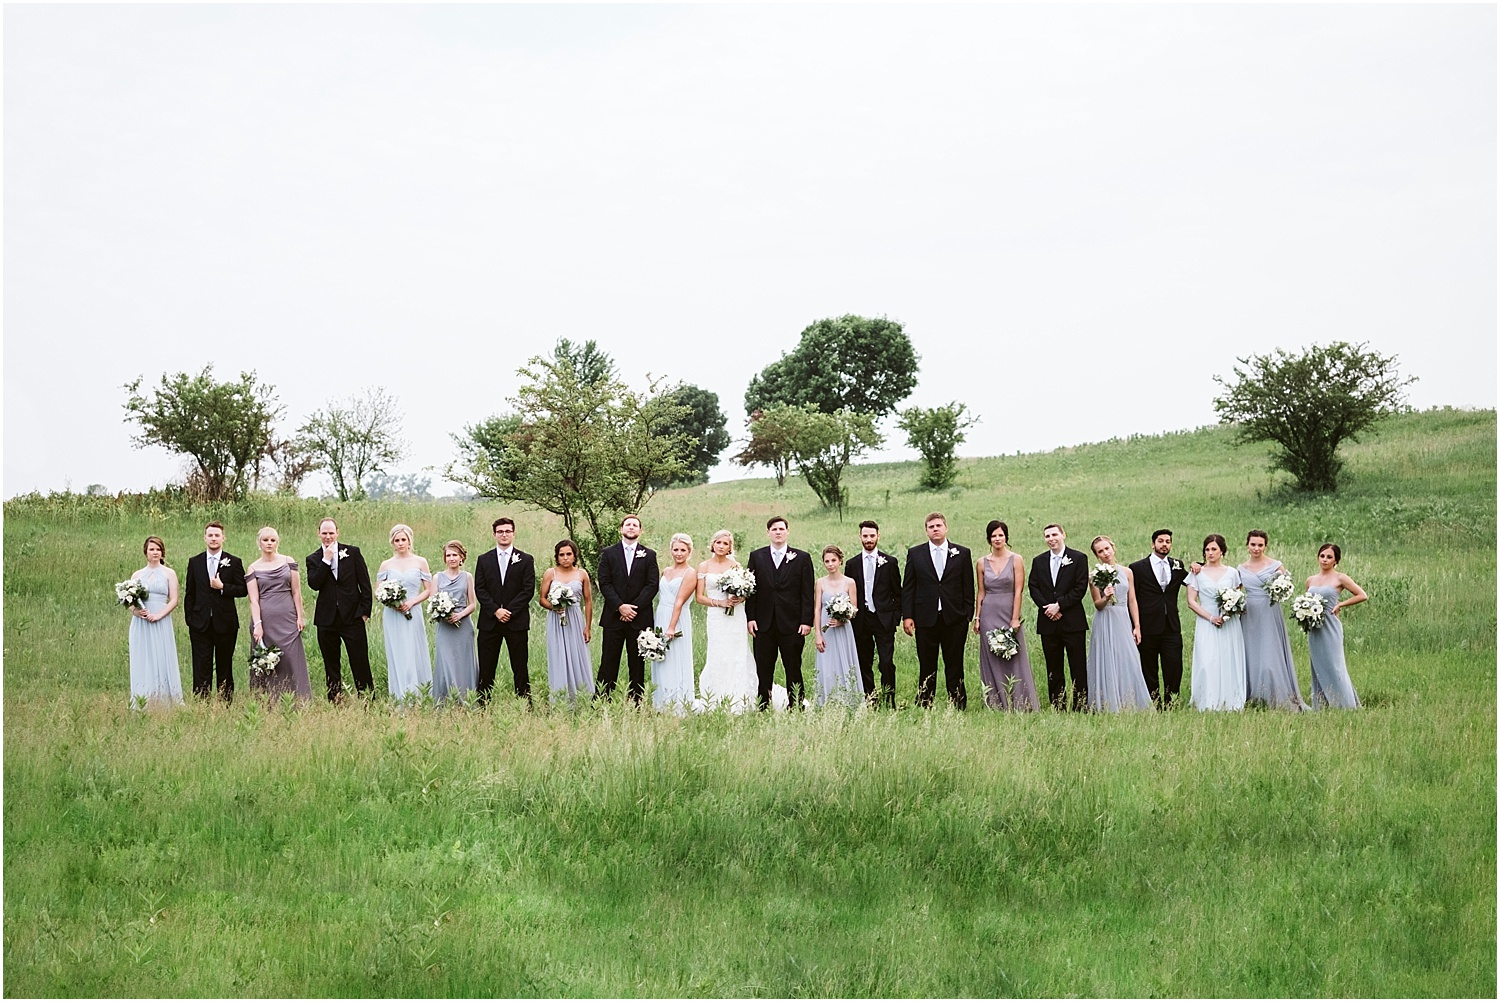 K_B_happy_bolingbrook_golf_club_illinois_suburbs_wedding_0183.jpg